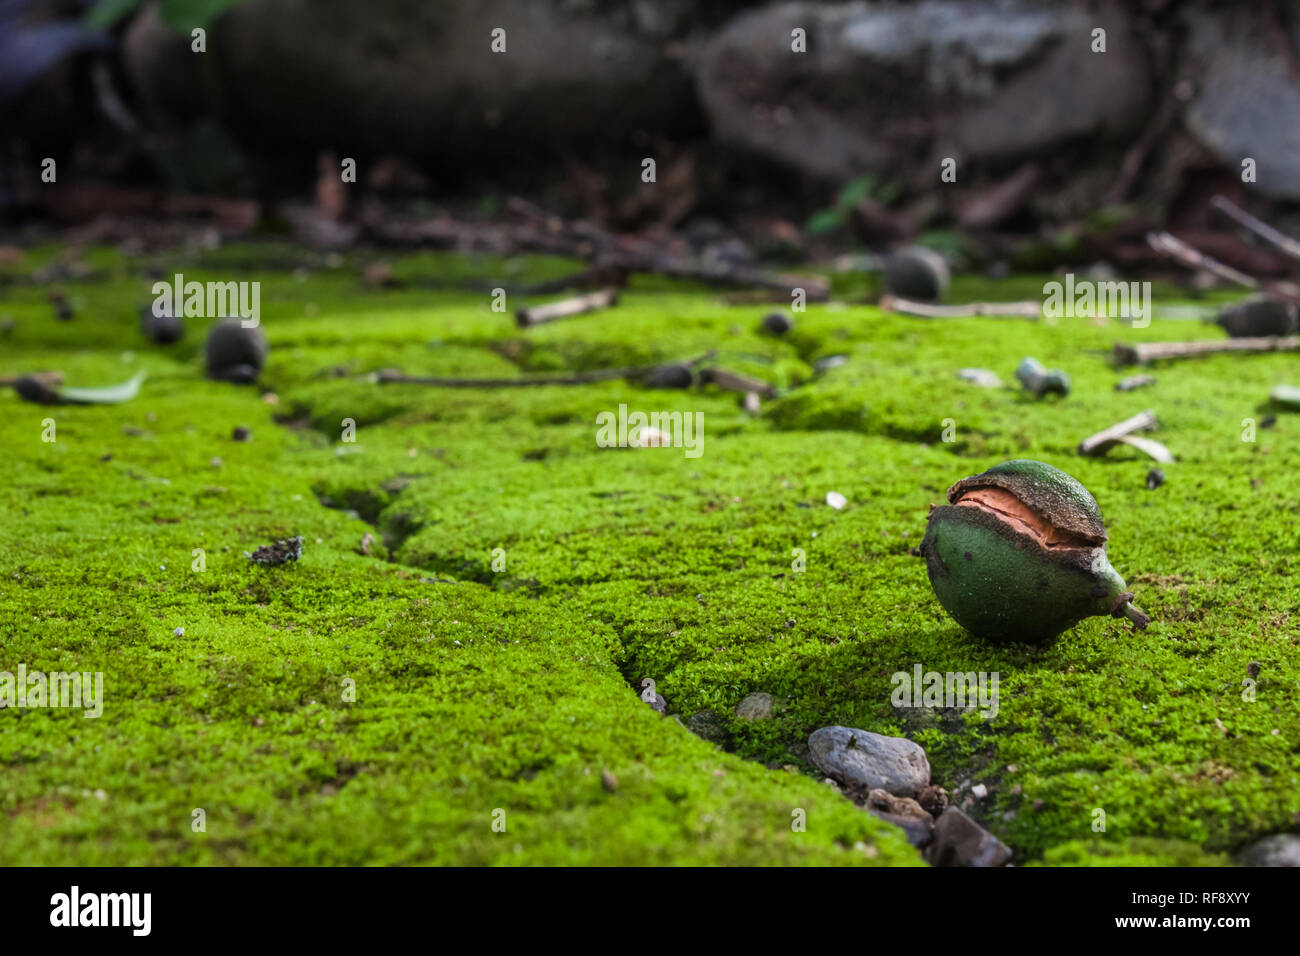 Exotic fruit in macro photo on green moss - Stock Image